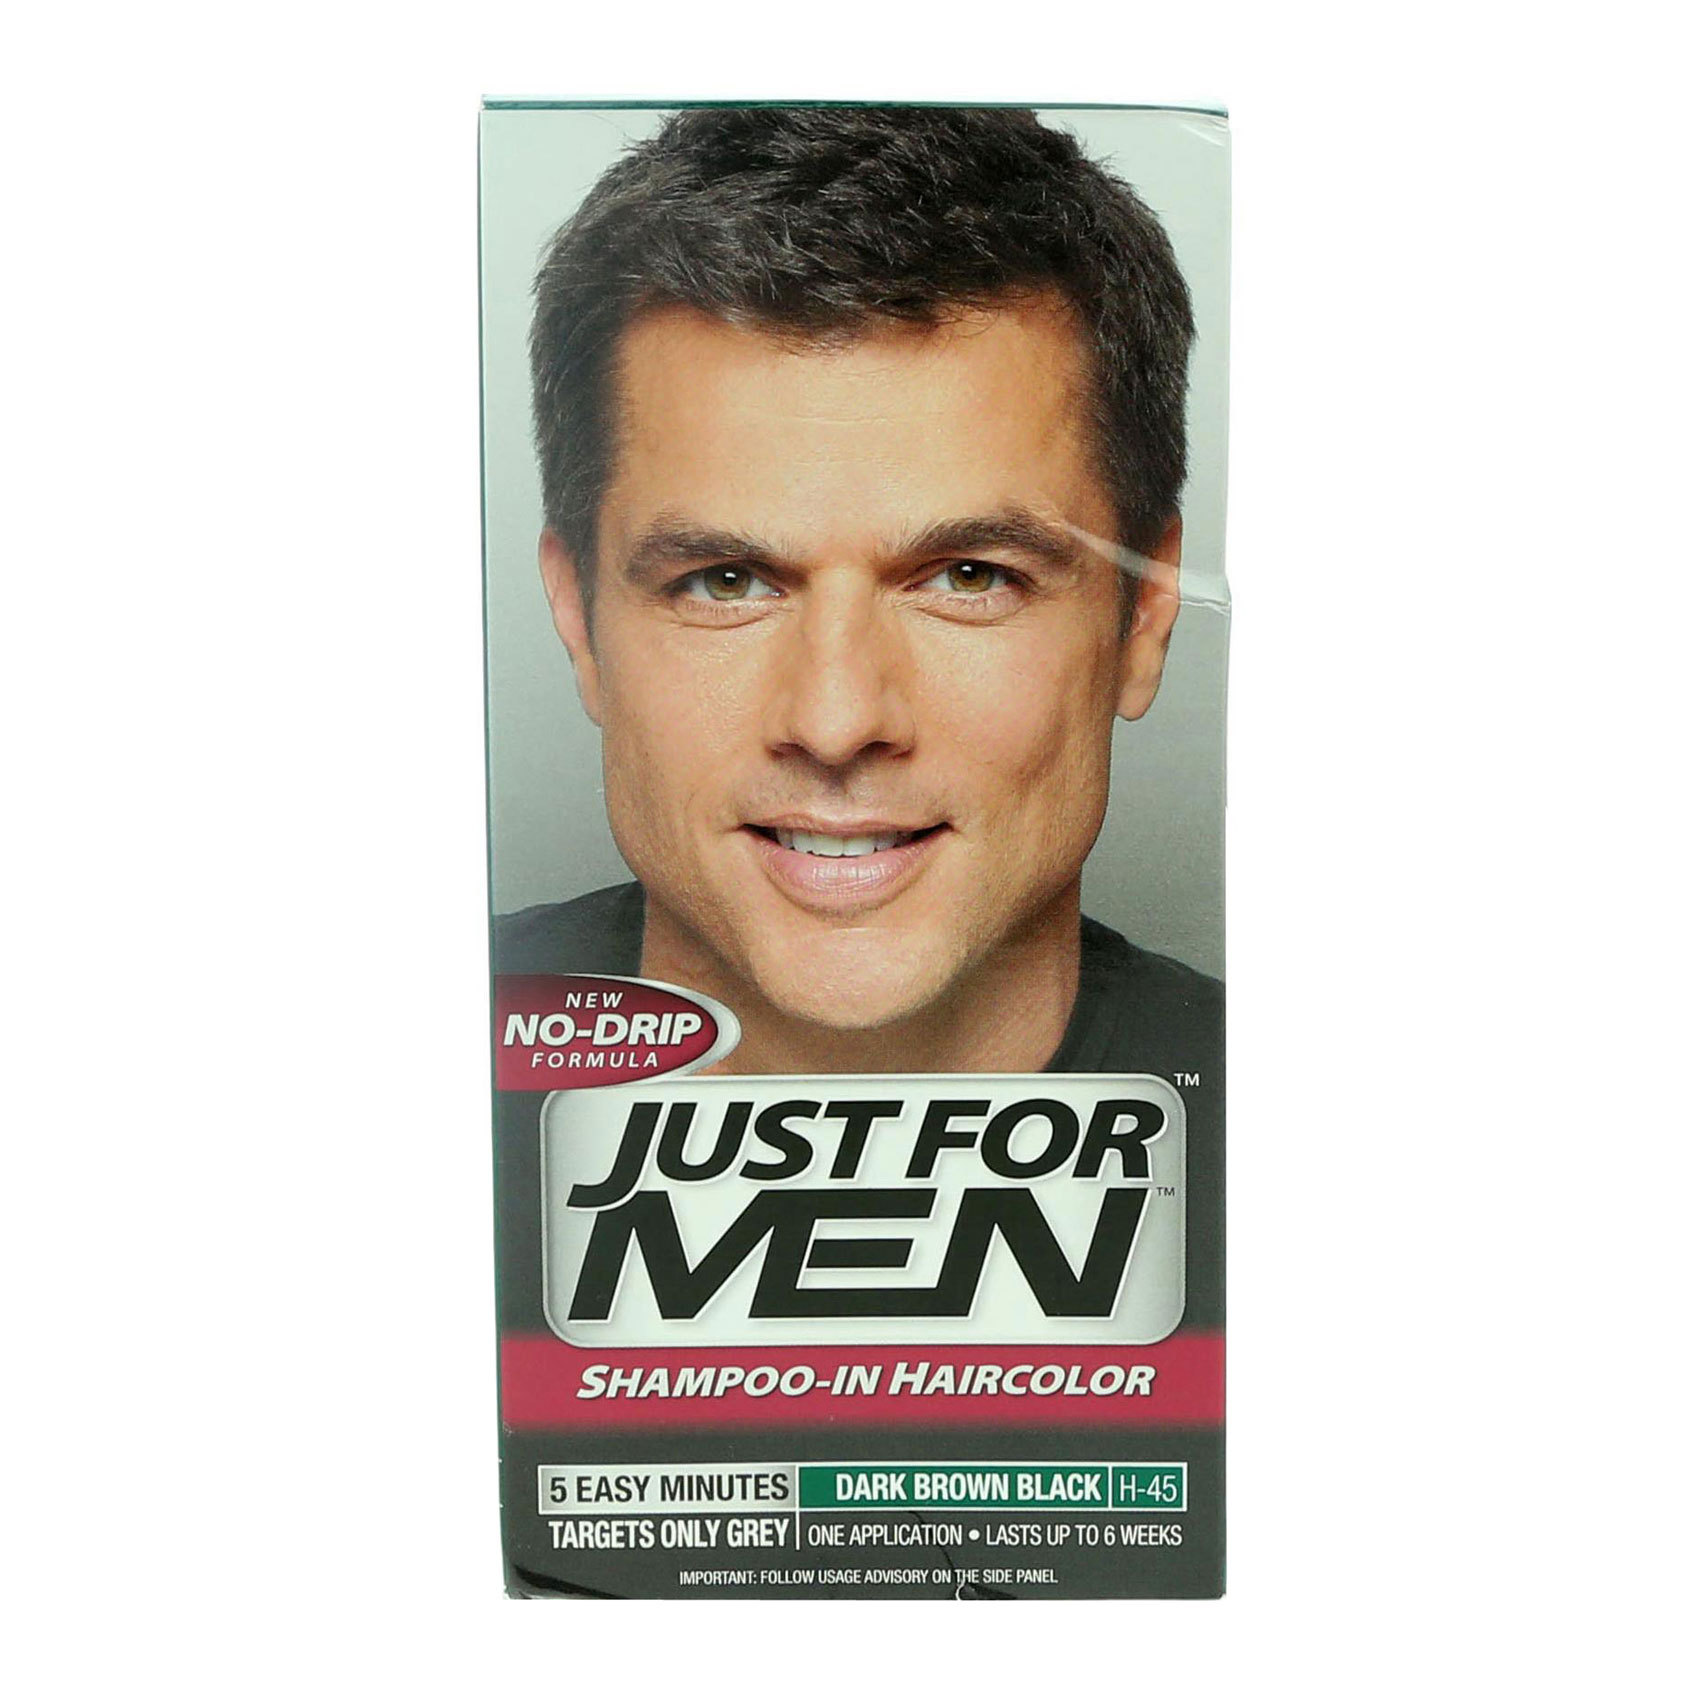 Buy Just For Men Dark Brown Shampoo Hair Color Online Shop Beauty Personal Care On Carrefour Uae